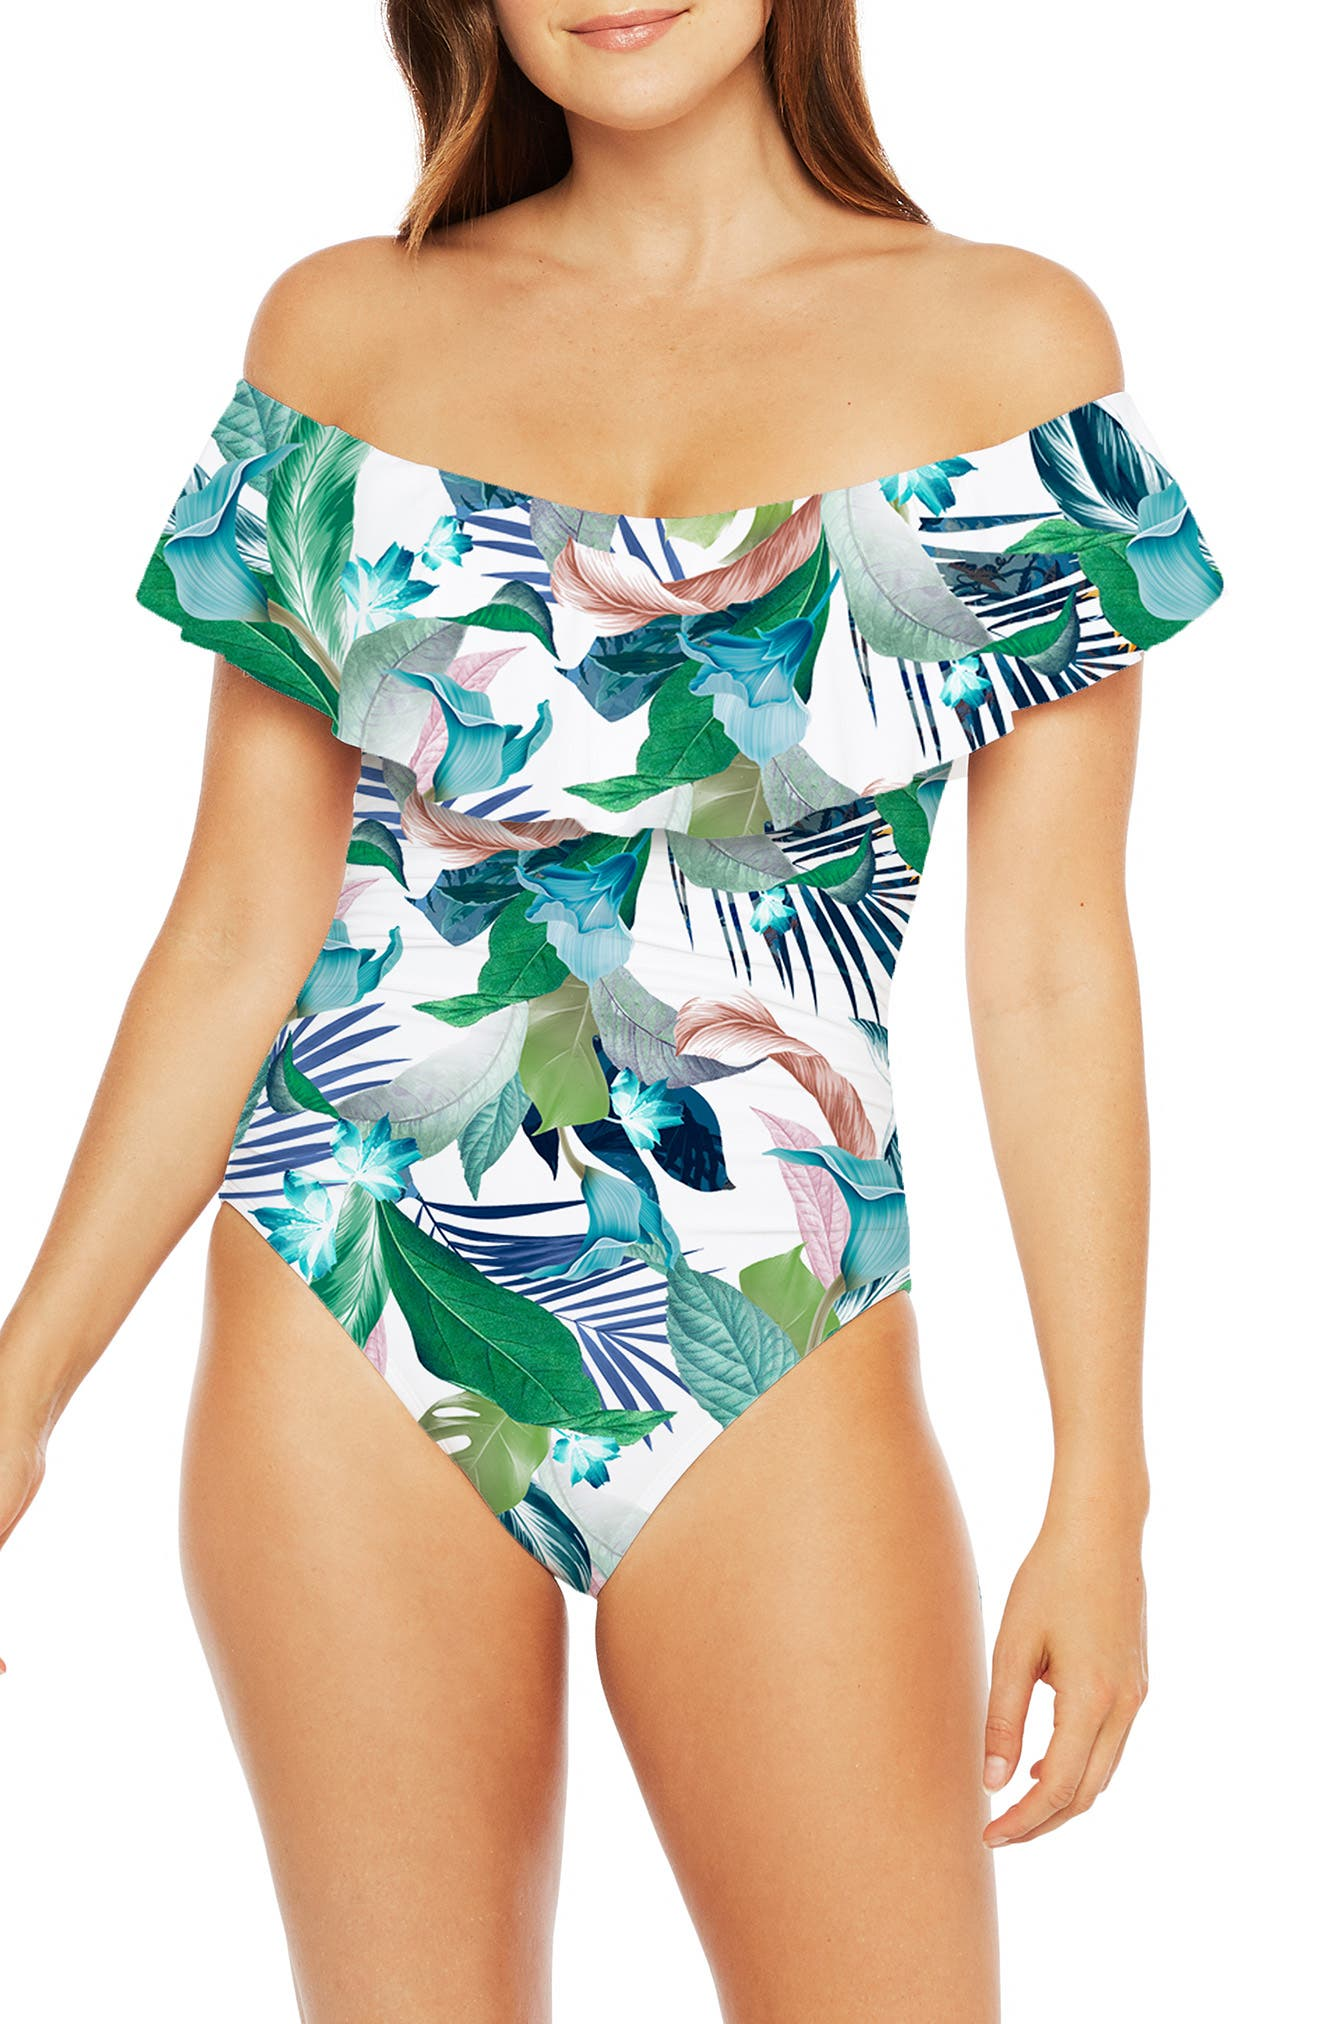 La Blanca In the Moment One-Piece Swimsuit